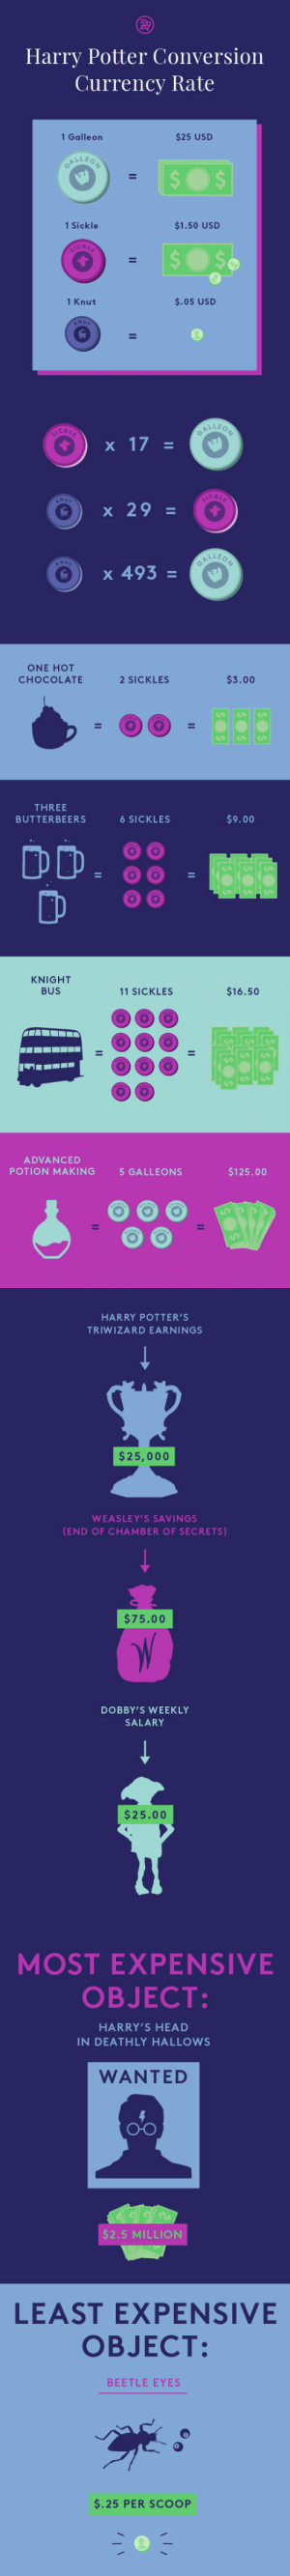 refinery29:  Need a cheat sheet for wizard finance? We got you Based on the calculations of an inspired fan, we put together a list of how many galleons you can expect to shell out to peep the next Chudley Cannons game. : Harry Potter Conversion  Currency Rate  1 Galle on  $25 USD  1 Sickle  $1.50 USD  CK  1 Knut  $.05 USD  C K L  CKL  x 29  LLE o  e ) x 493   ONE HOT  CHOCOLATE  2 SICKLES  $3.00  THREE  BUTTERBEERS  6 SICKLES  $9.00  DD·88  KNIGHT  BUS  11 SICKLES  $16.50  ADVANCED  POTION MAKING  5 GALLEONS  $125.00   HARRY POTTER'S  TRIWIZARD EARNINGS  $25,000  WEASLEY'S SAVINGS  (END OF CHAMBER OF SECRETS)  $75.00  DOBBY'S WEEKLY  SALARY  $25.00   MOST EXPENSIVE  OBJECT  HARRY'S HEAD  IN DEATHLY HALLOWS  WANTED  O-O  $2.5 MILLION  LEAST EXPENSIVE  OBJECT:  BEETLE EYES  $.25 PER SCOOP refinery29:  Need a cheat sheet for wizard finance? We got you Based on the calculations of an inspired fan, we put together a list of how many galleons you can expect to shell out to peep the next Chudley Cannons game.